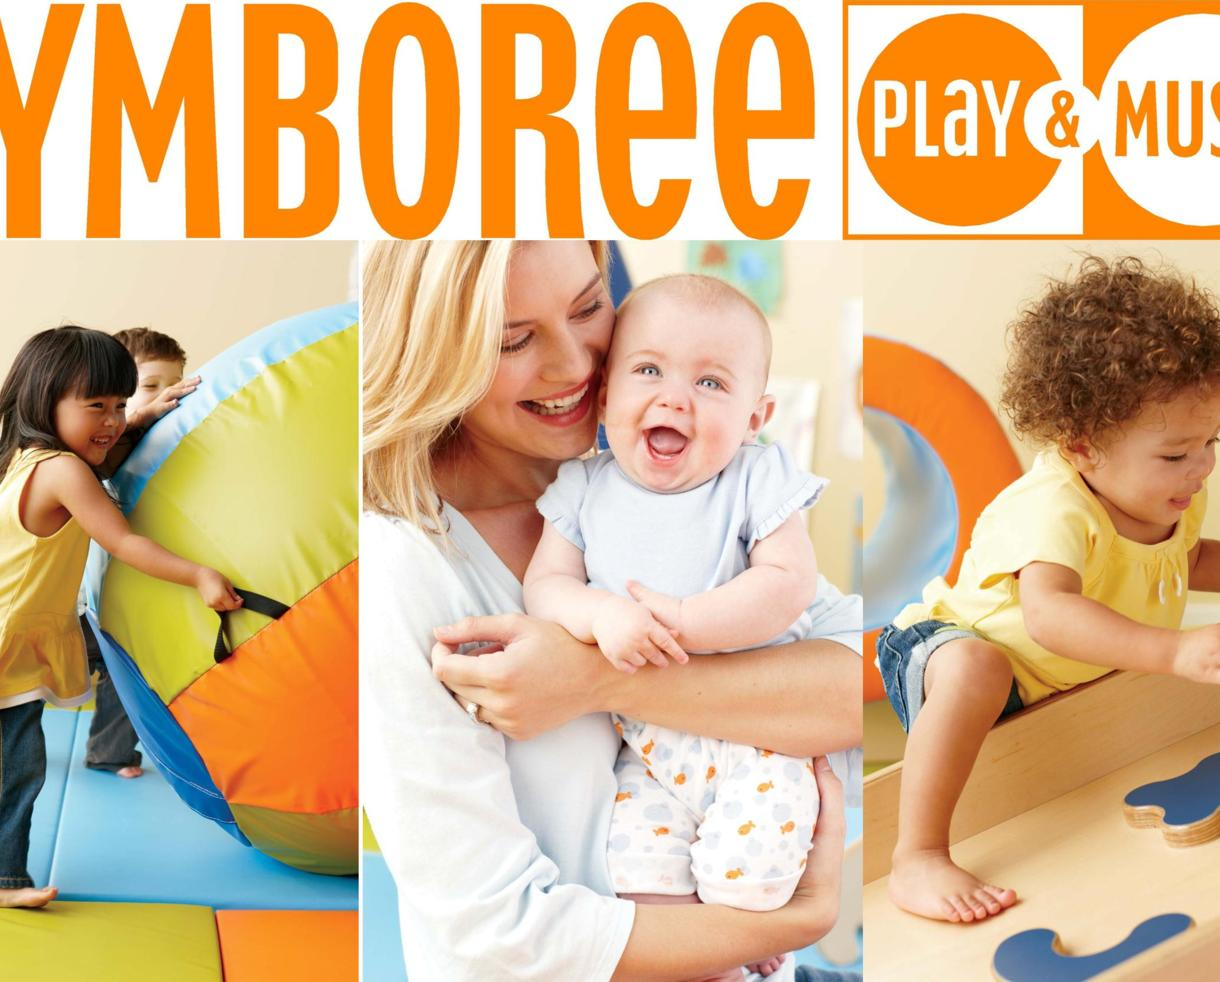 Gymboree Play Music Locations & Hours Near Herndon, VA ...